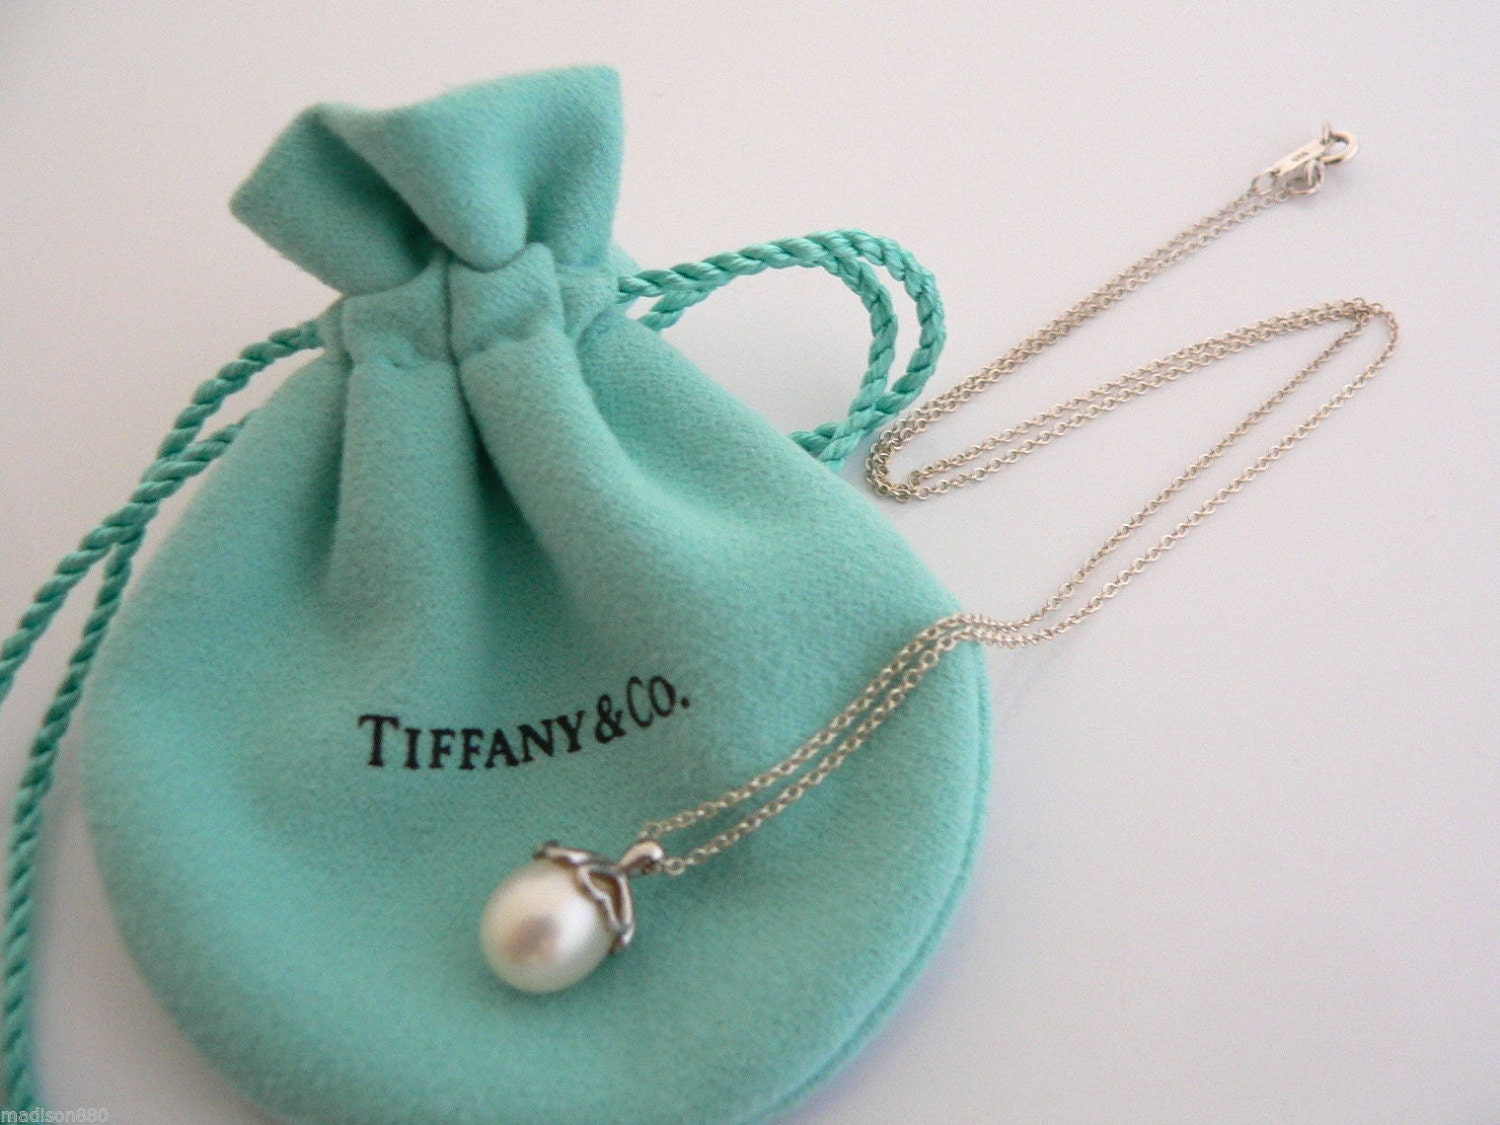 Tiffany co sterling silver heart cap pearl necklace pendant zoom audiocablefo